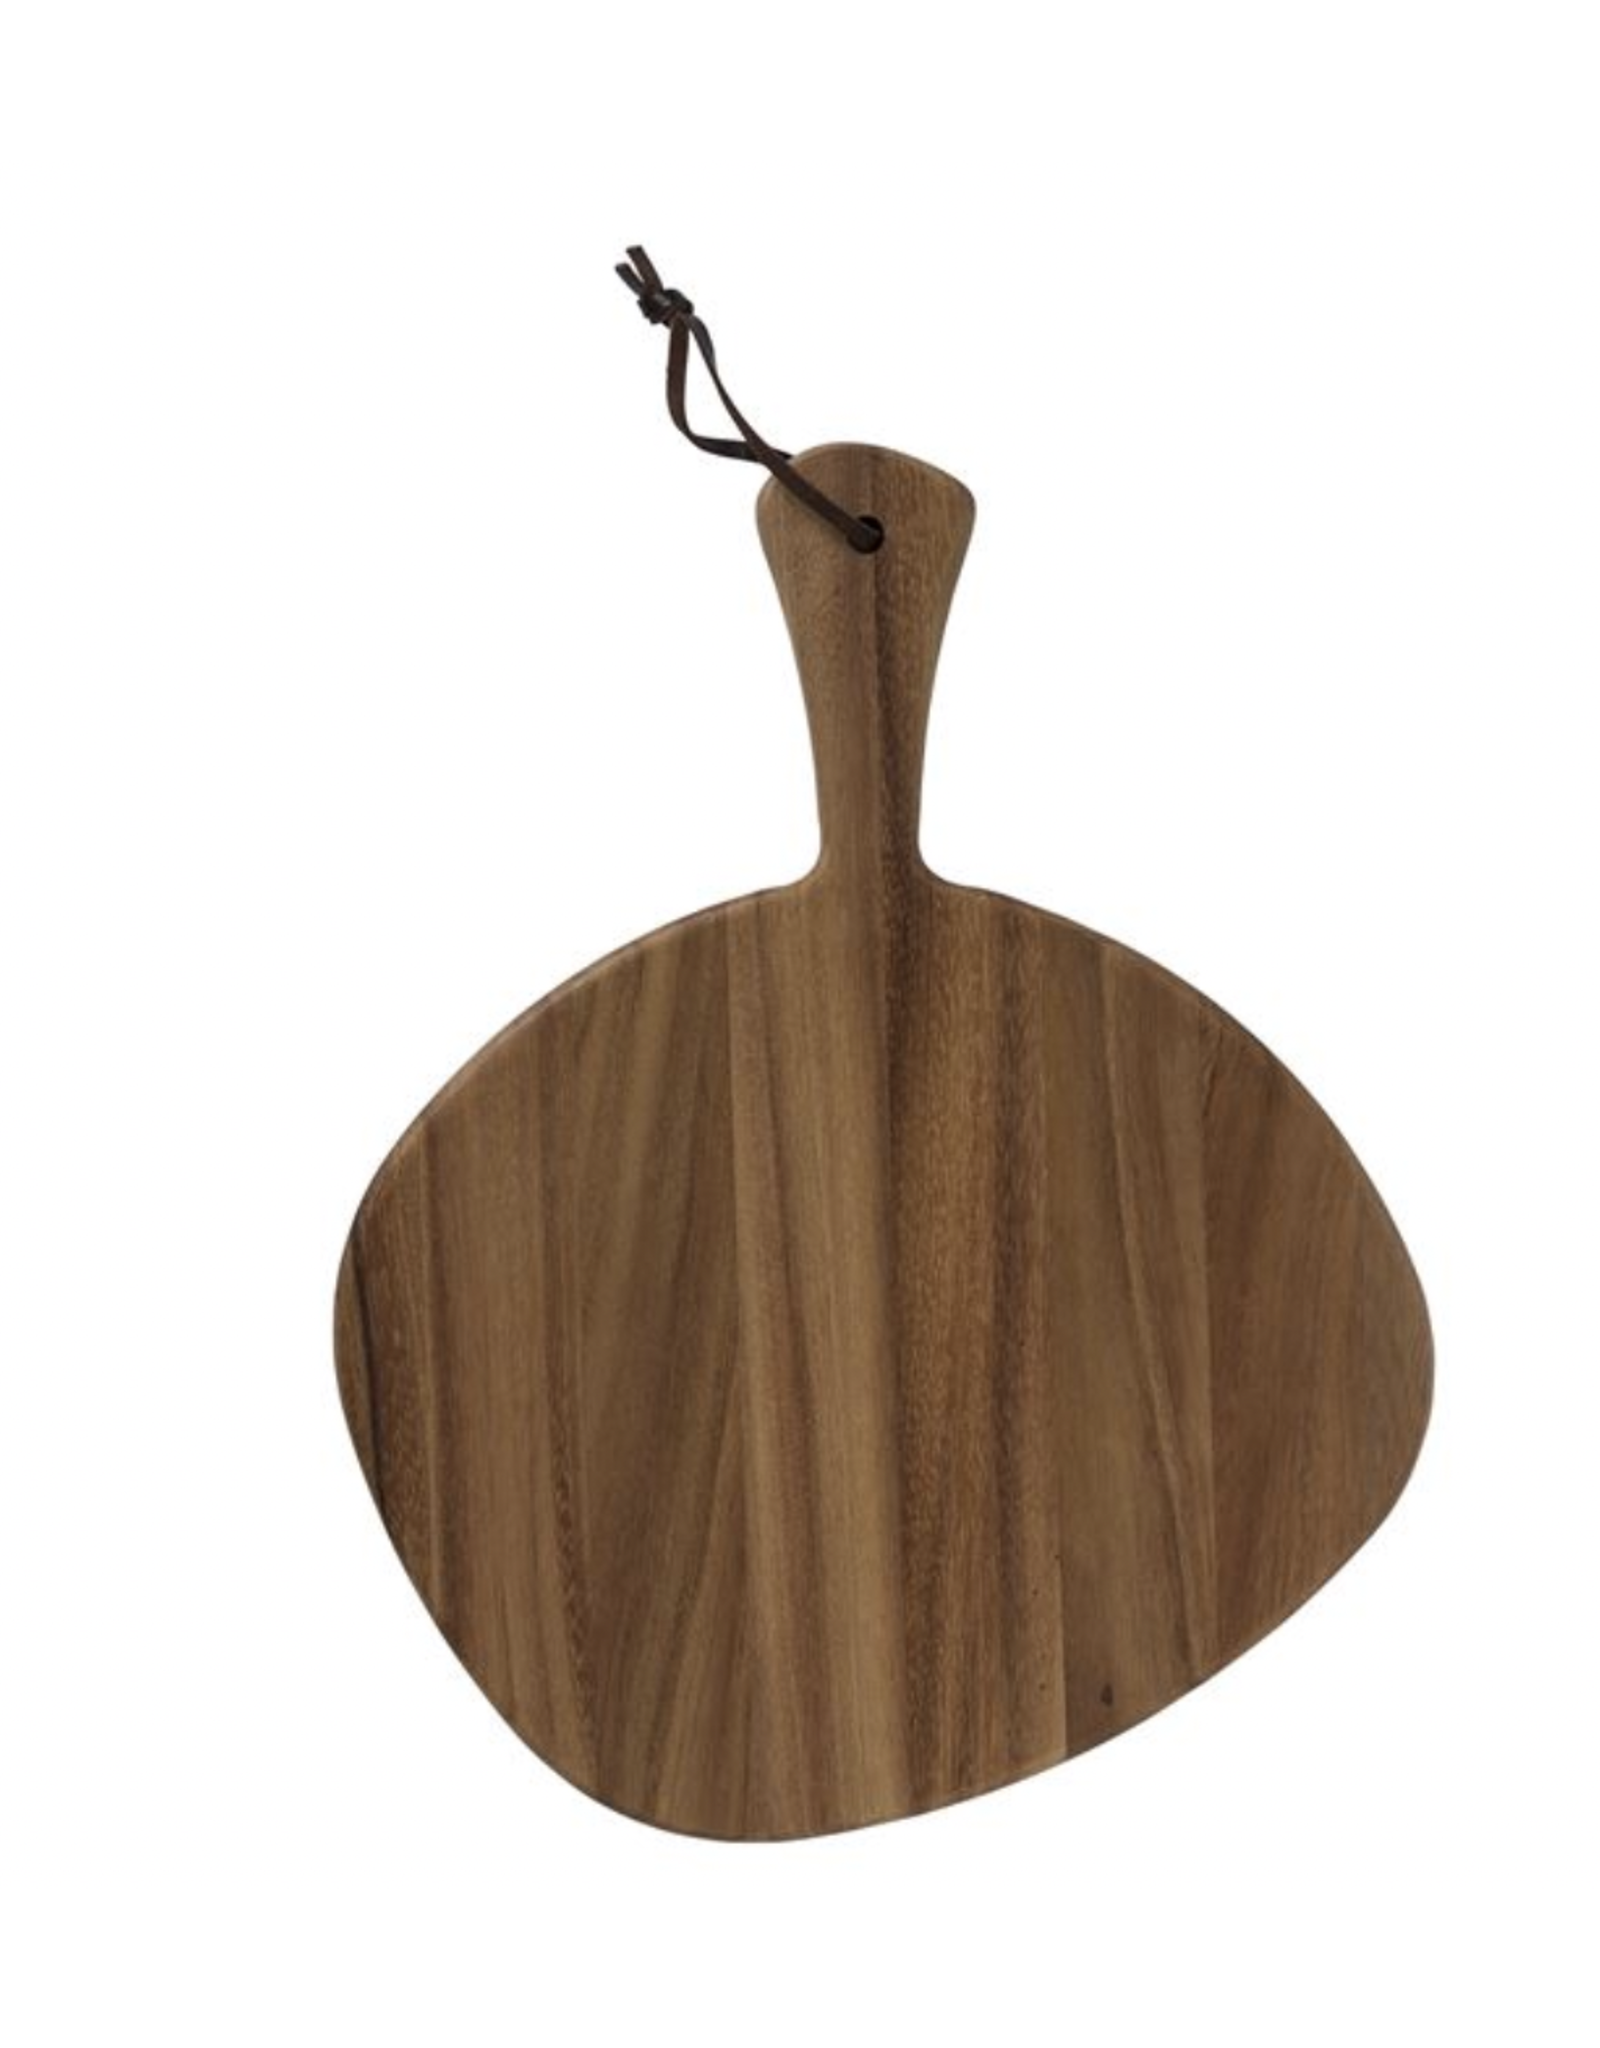 Bloomingville Acacia Wood Tray/Cutting Board with Leather Strap